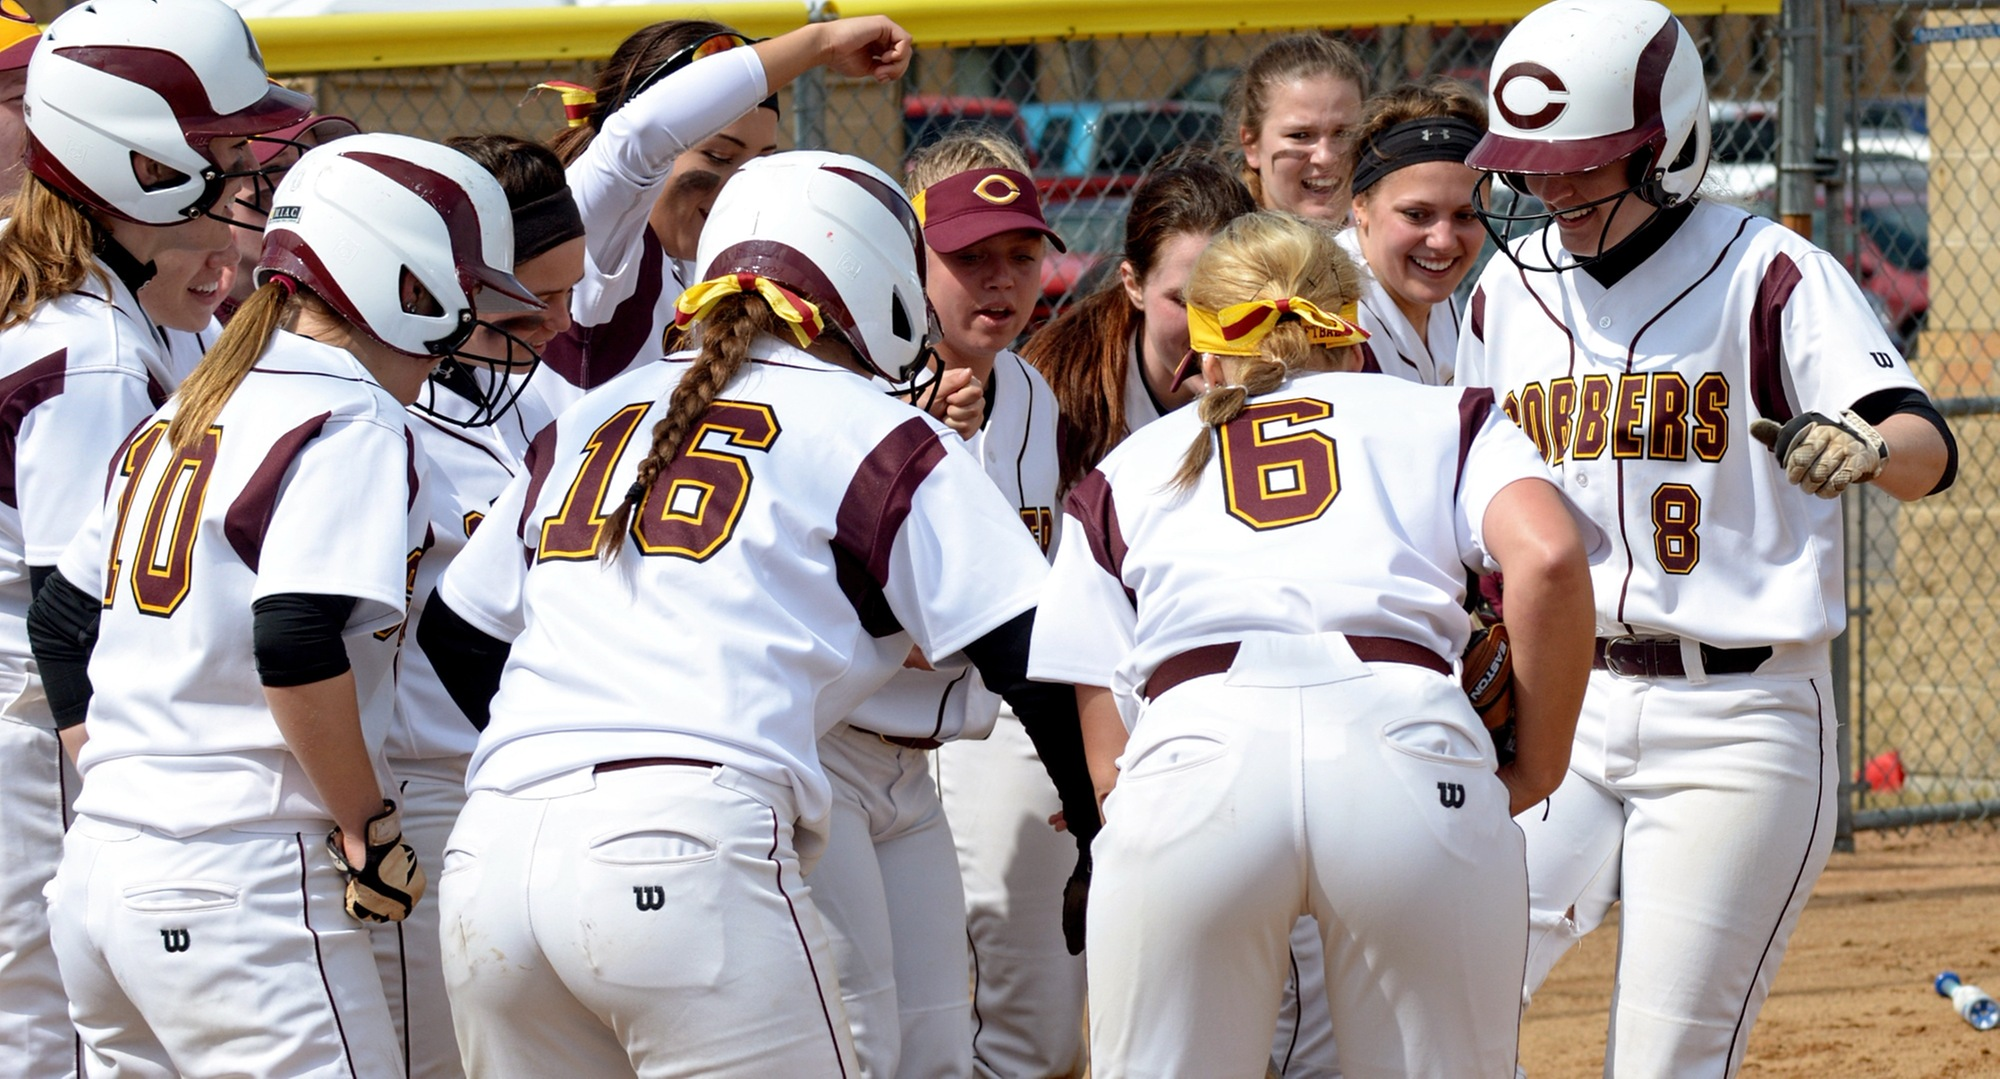 Sophomore Sydney Roberts (#8) gets ready to touch home plate after one of her two home runs in the Cobbers' MIAC opener against St. Benedict.